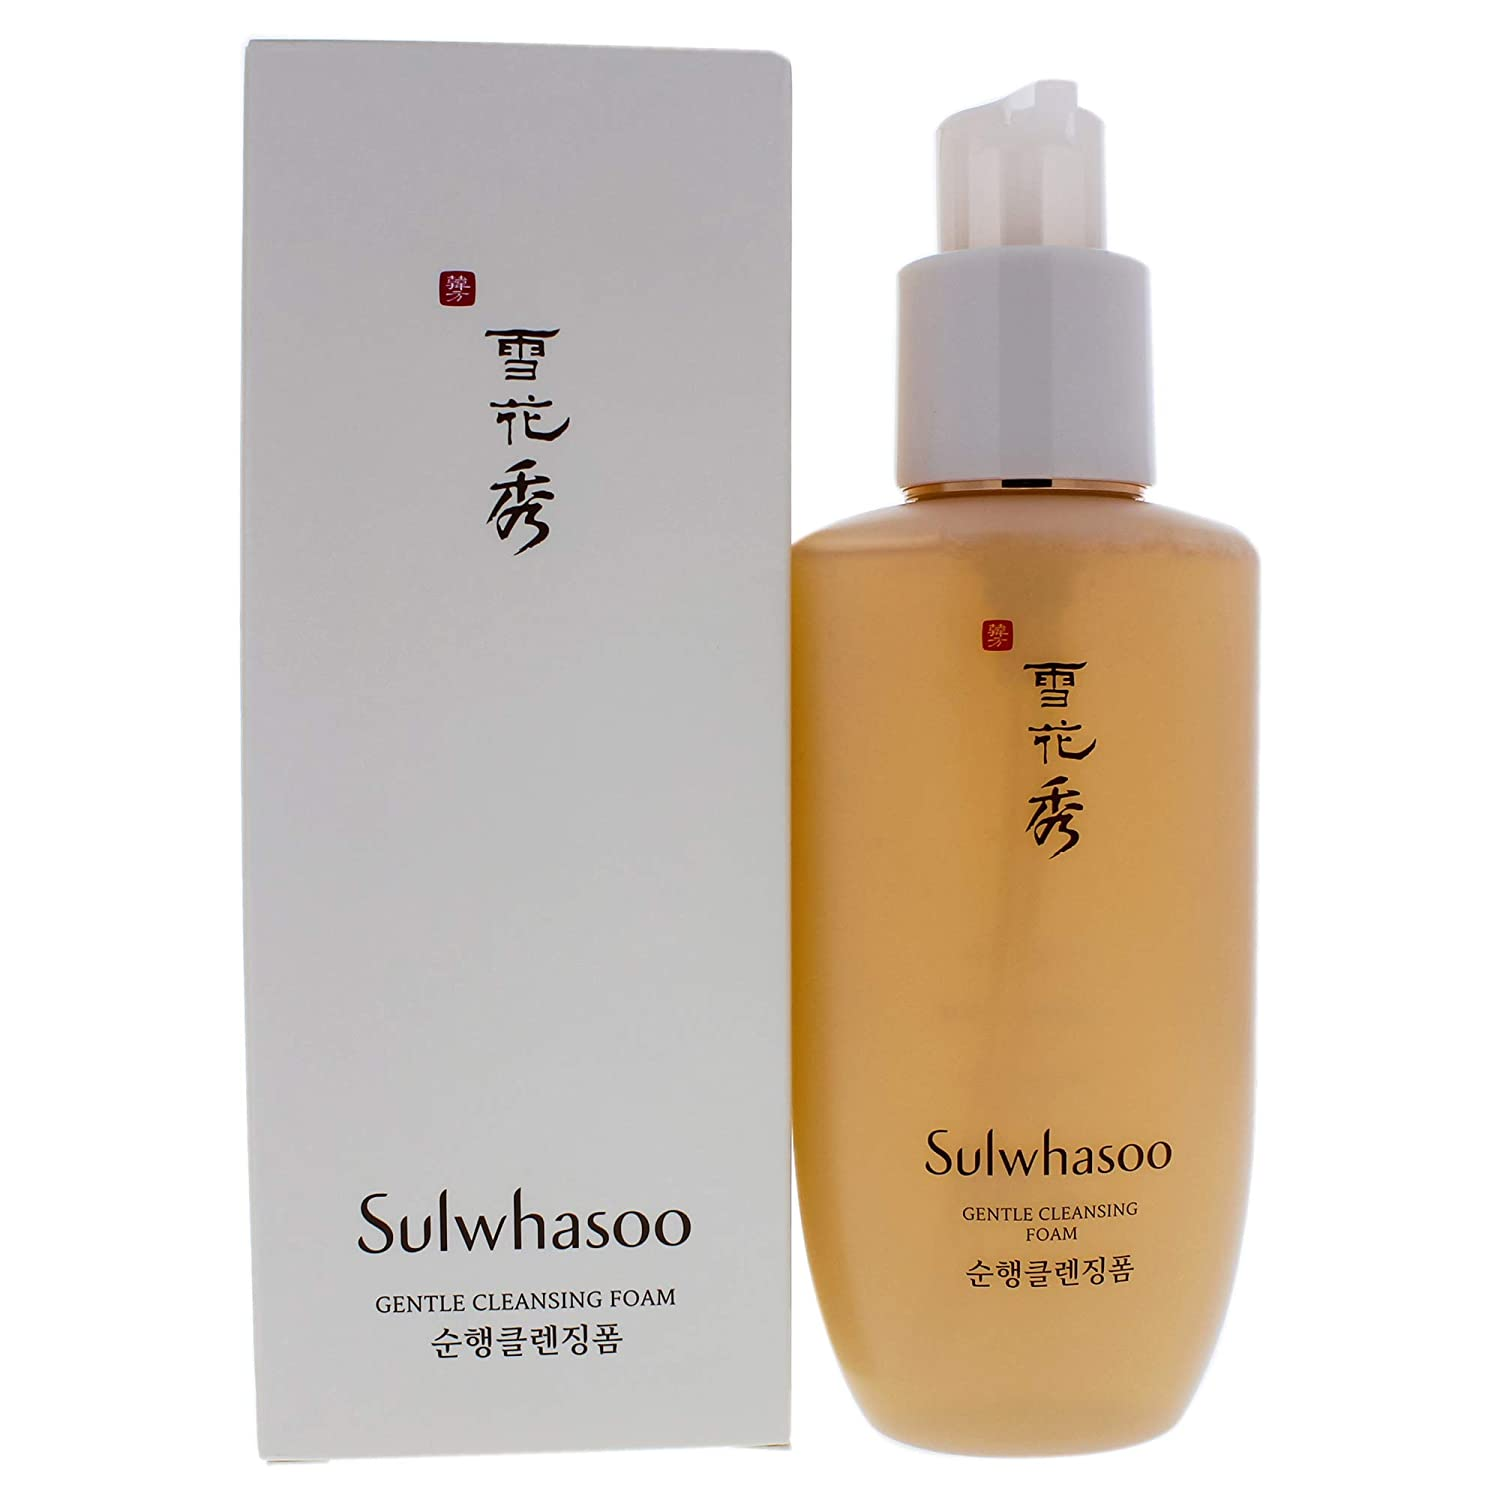 Sulwhasoo Gentle Cleansing Foam 6.7 Oz Women, 6.7 Oz